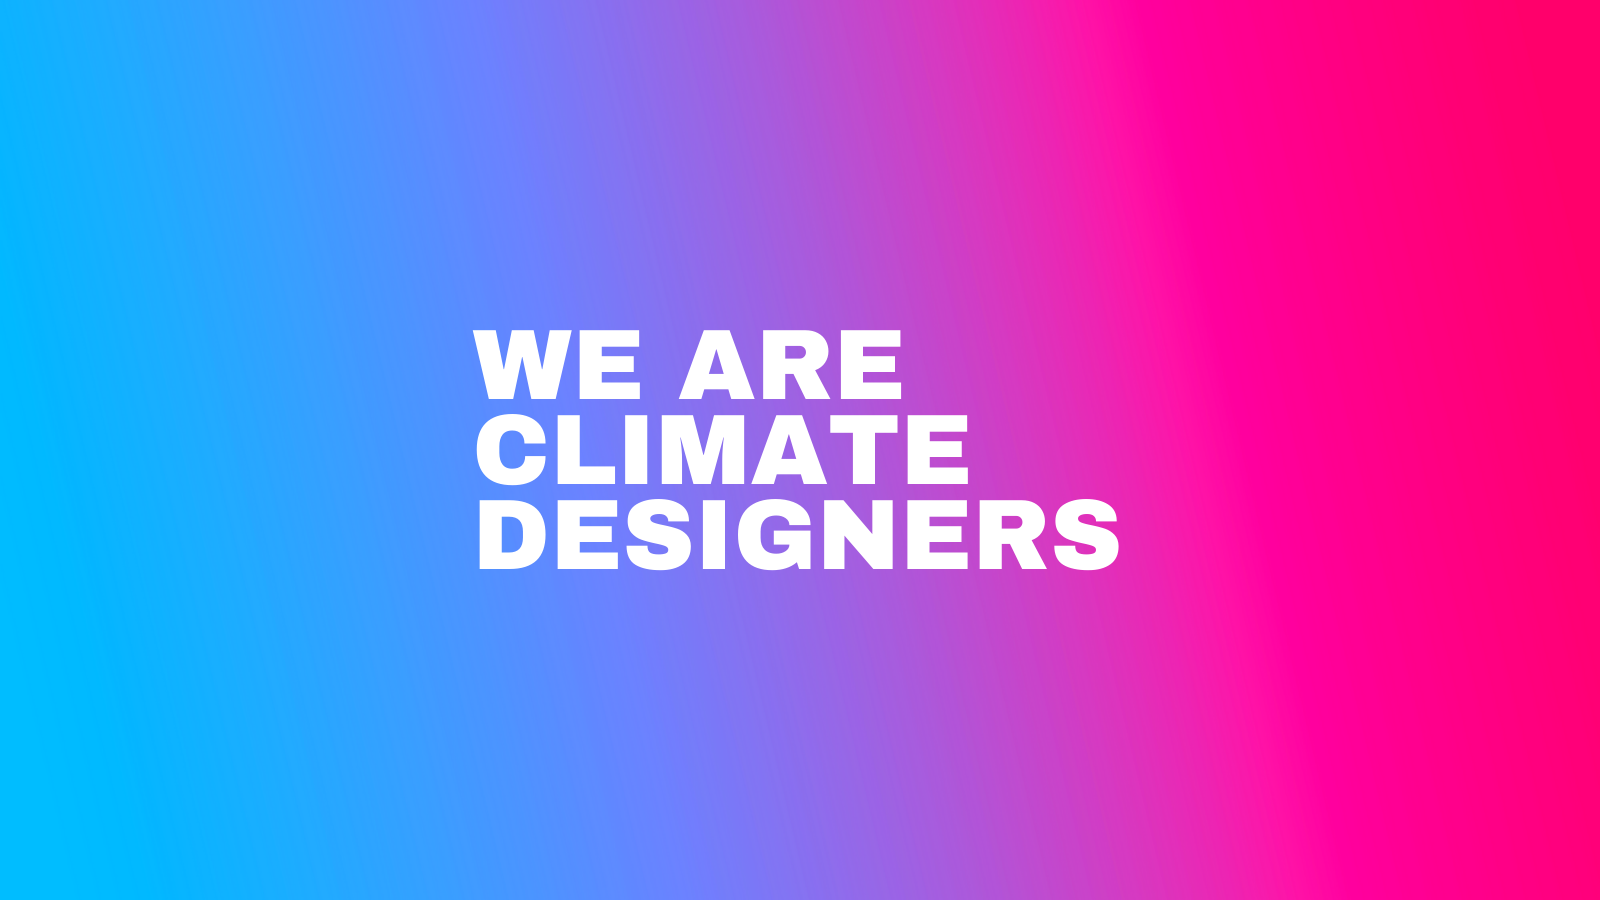 """""""We are climate designers"""" set in large, all caps text against a blue, purple, and pink gradient background."""